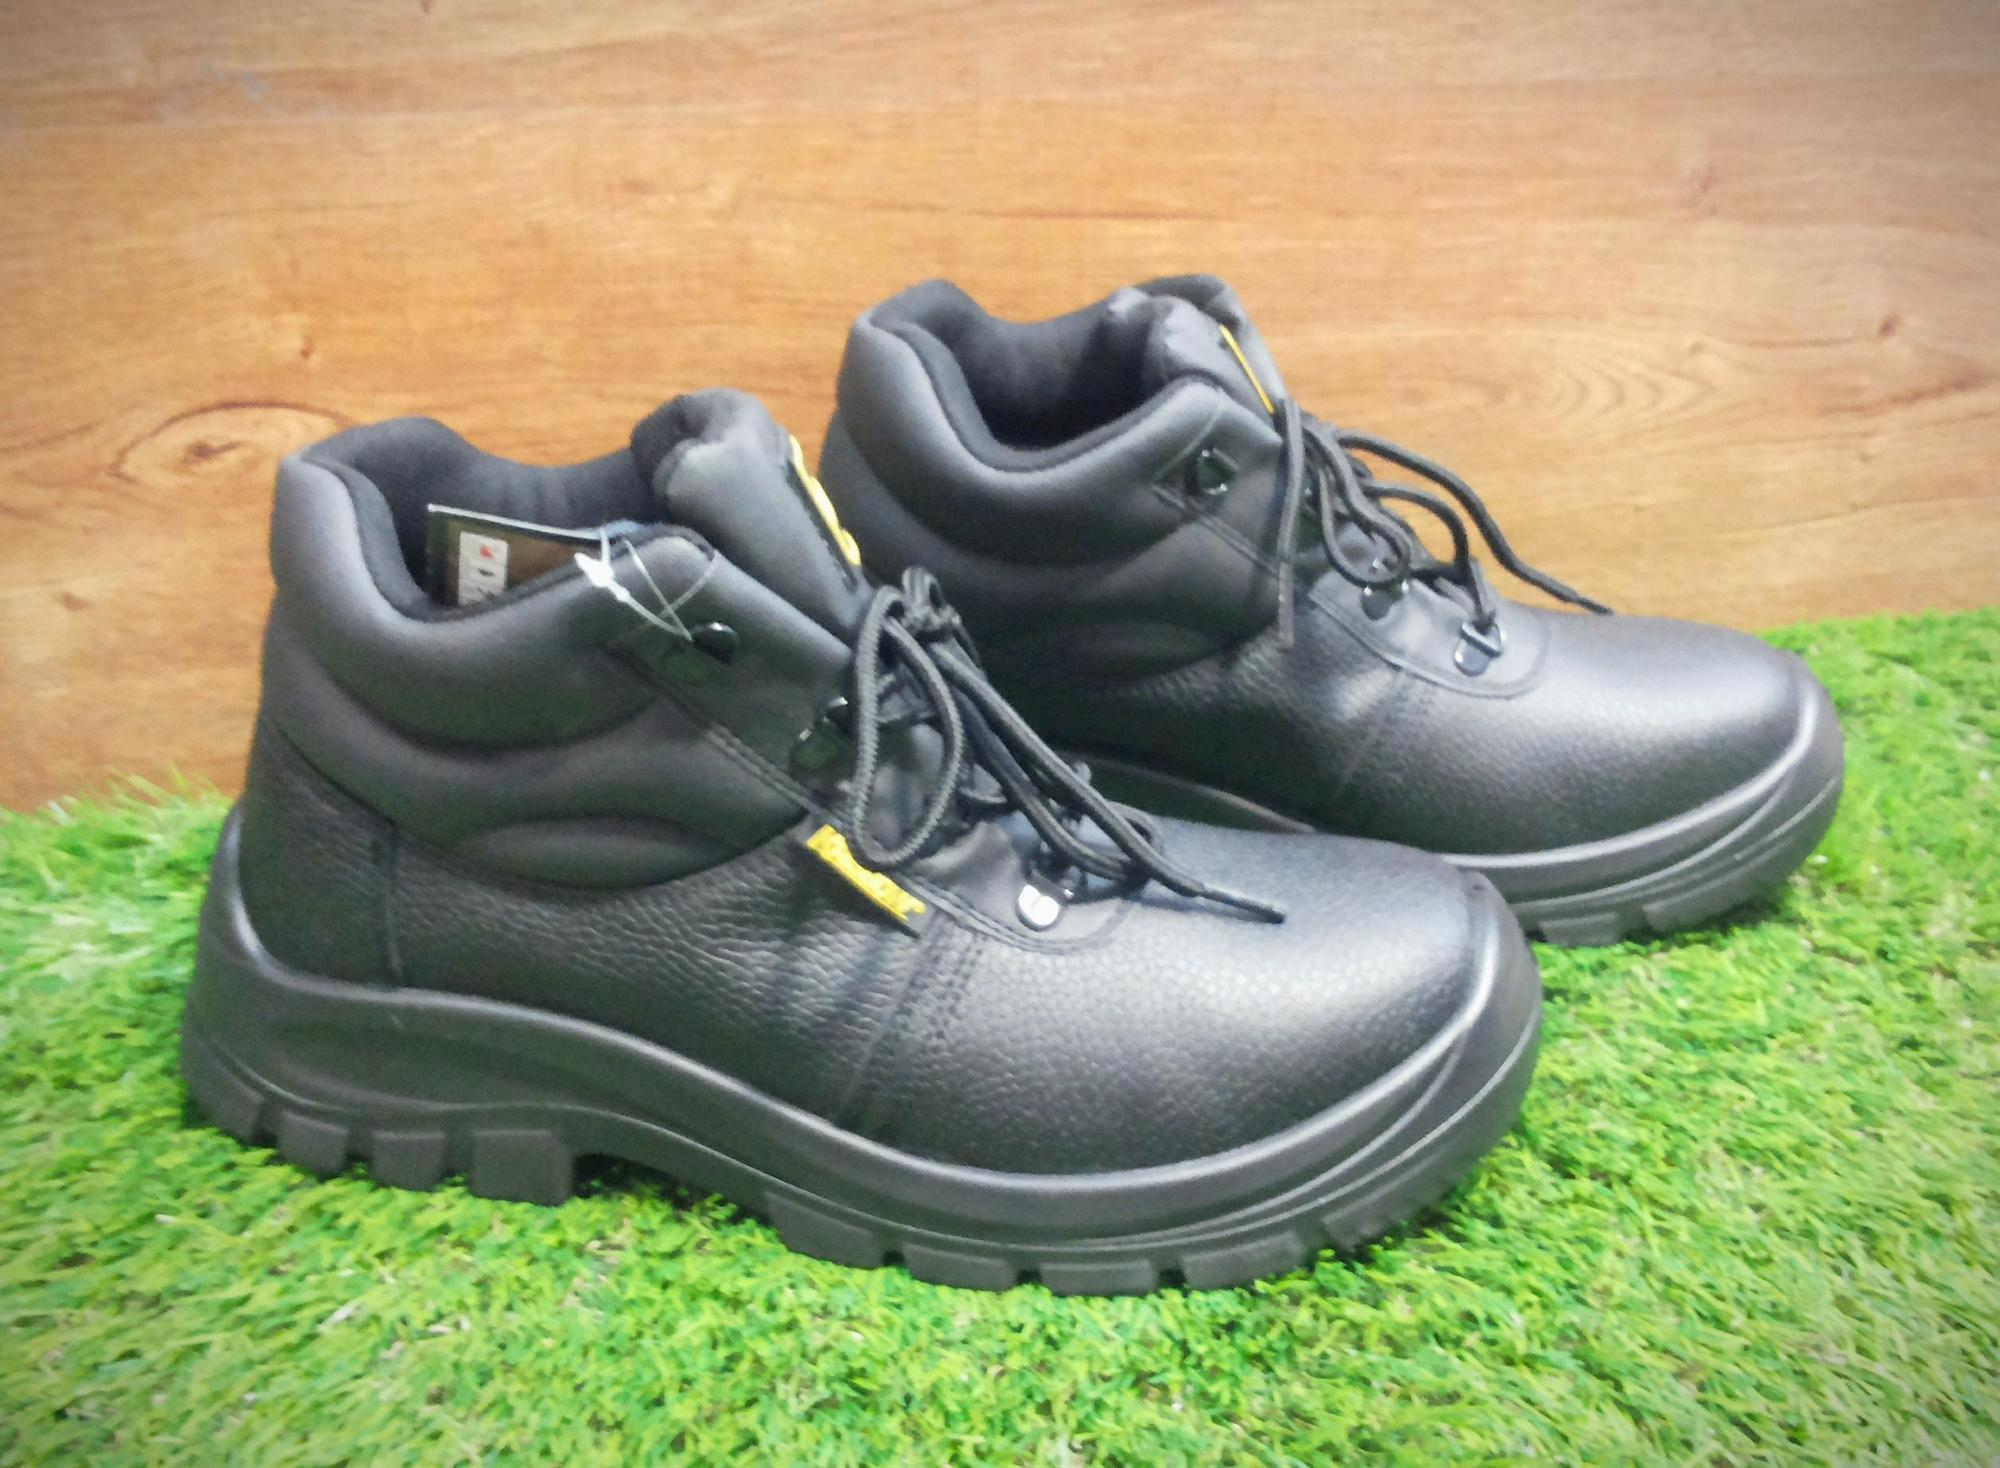 Safety shoes krisbow tipe Maxi 6 inch sepatu pengaman krisbow tipe MAXI 6 inch